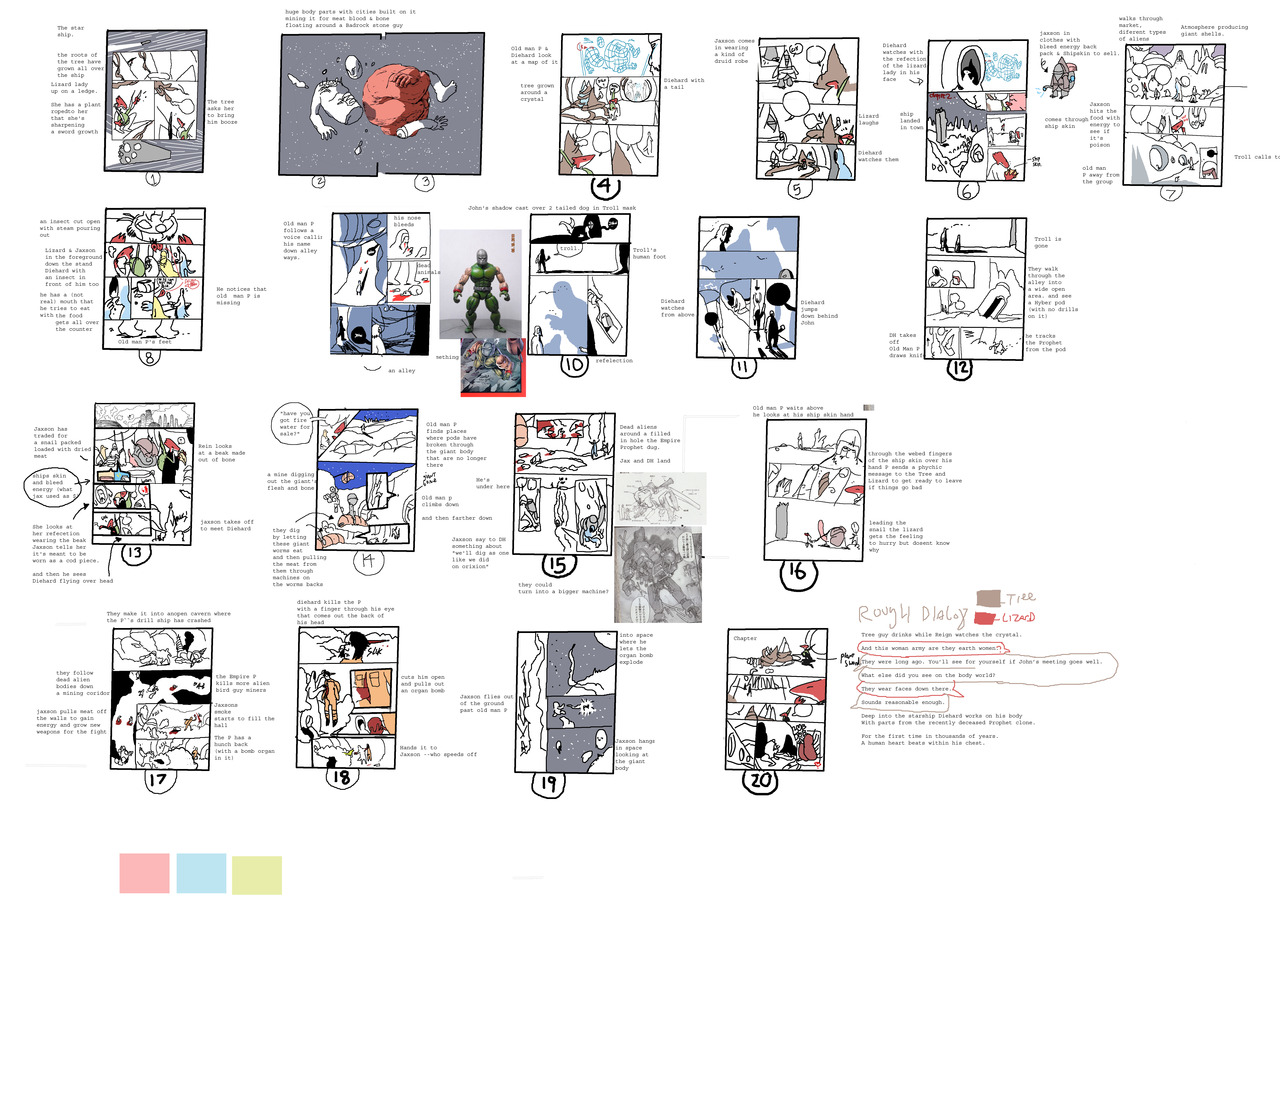 "royalboiler :     Here's what I sent Giannis to work his comic book magic on for Prophet #31.   Hopefully it save some time to show him what I'm thinking like this as opposed to him having to translate ideas into layouts. deadlines and alllll   And then he can Egg Shen them—""take what we want and leave the rest. Just like your salad bar.""     this is awesome"